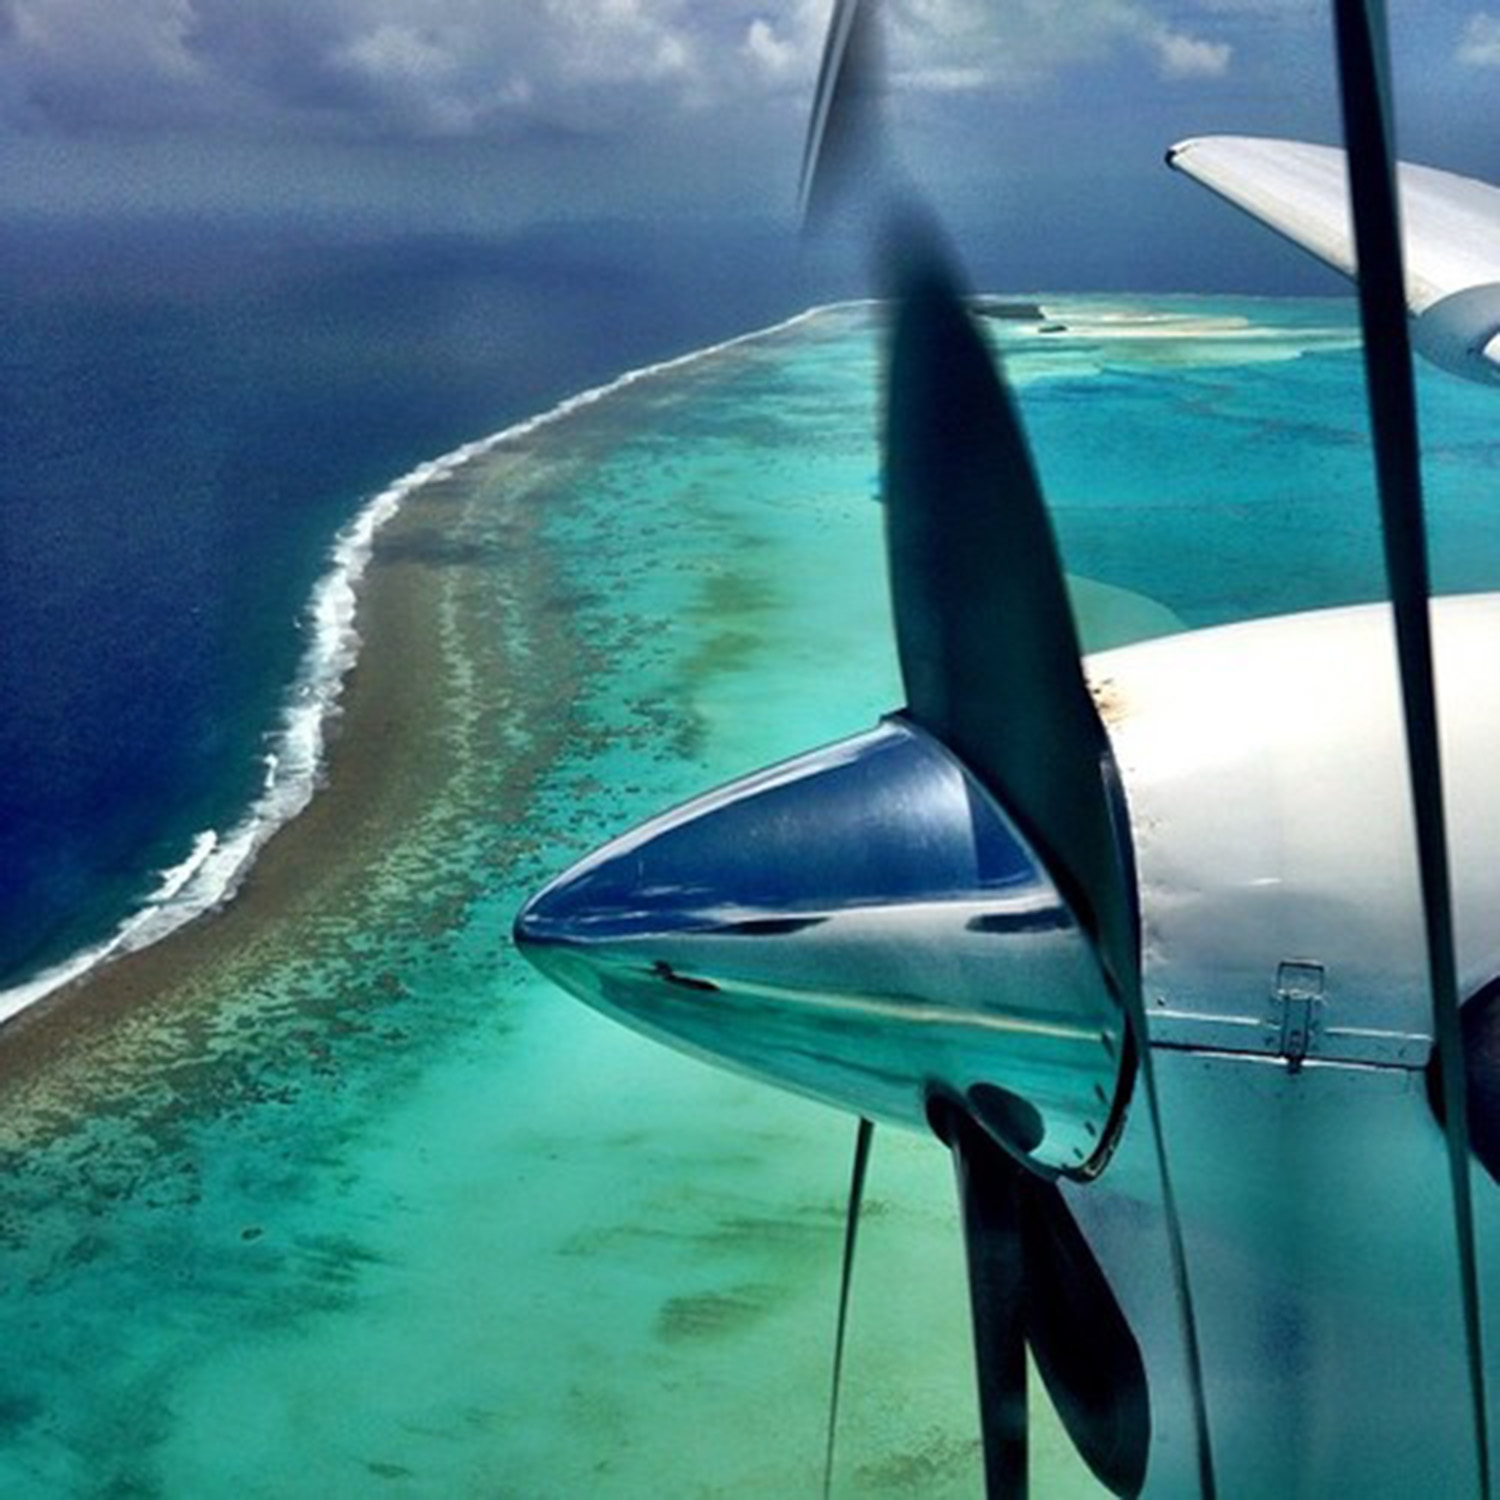 An aerial image of the Cook Island's ombre ocean and seaplane propeller